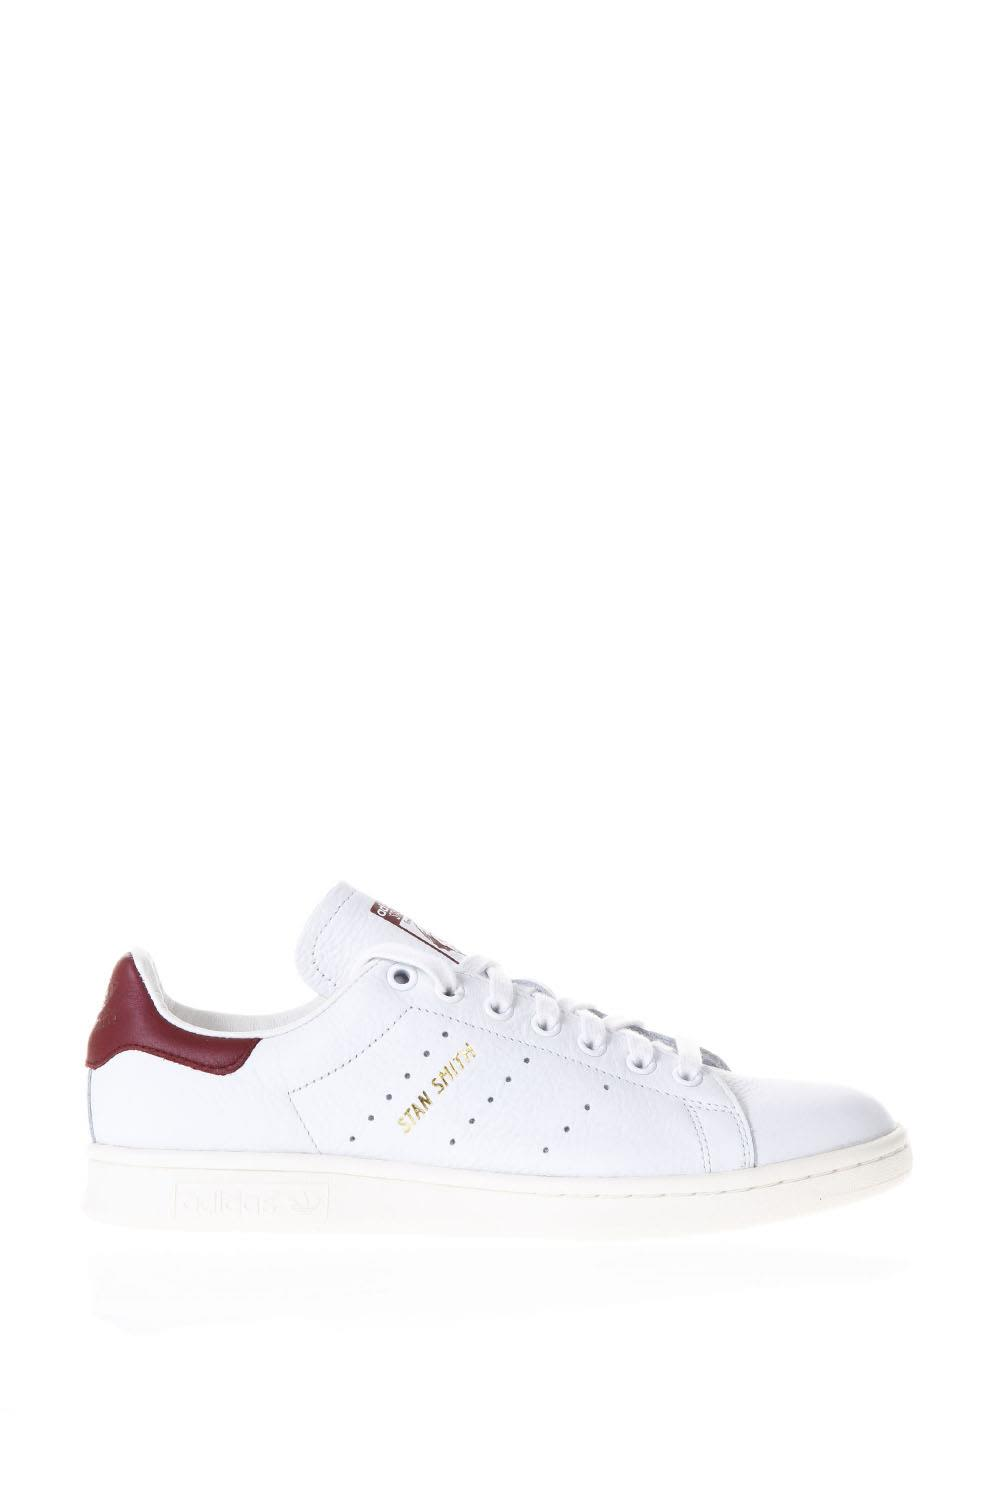 Adidas Originals White Stan Smith Ftwr Shoes